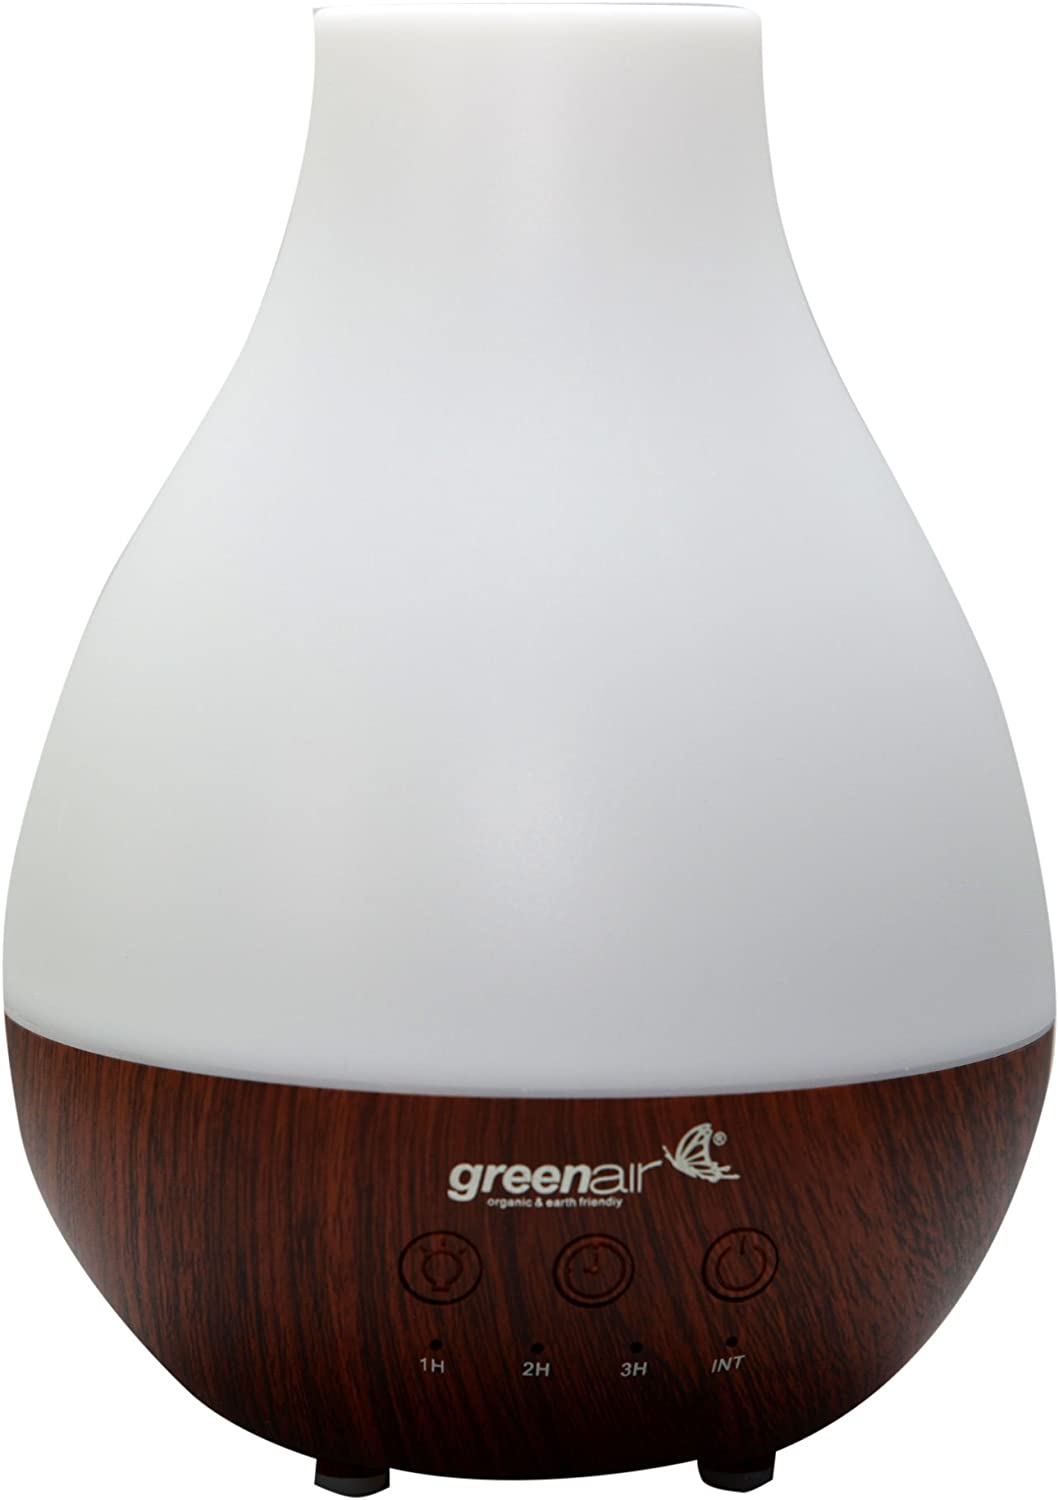 Green Air Nature's Mist Essential Oil Diffuser for Aromatherapy, 1.1 Pound